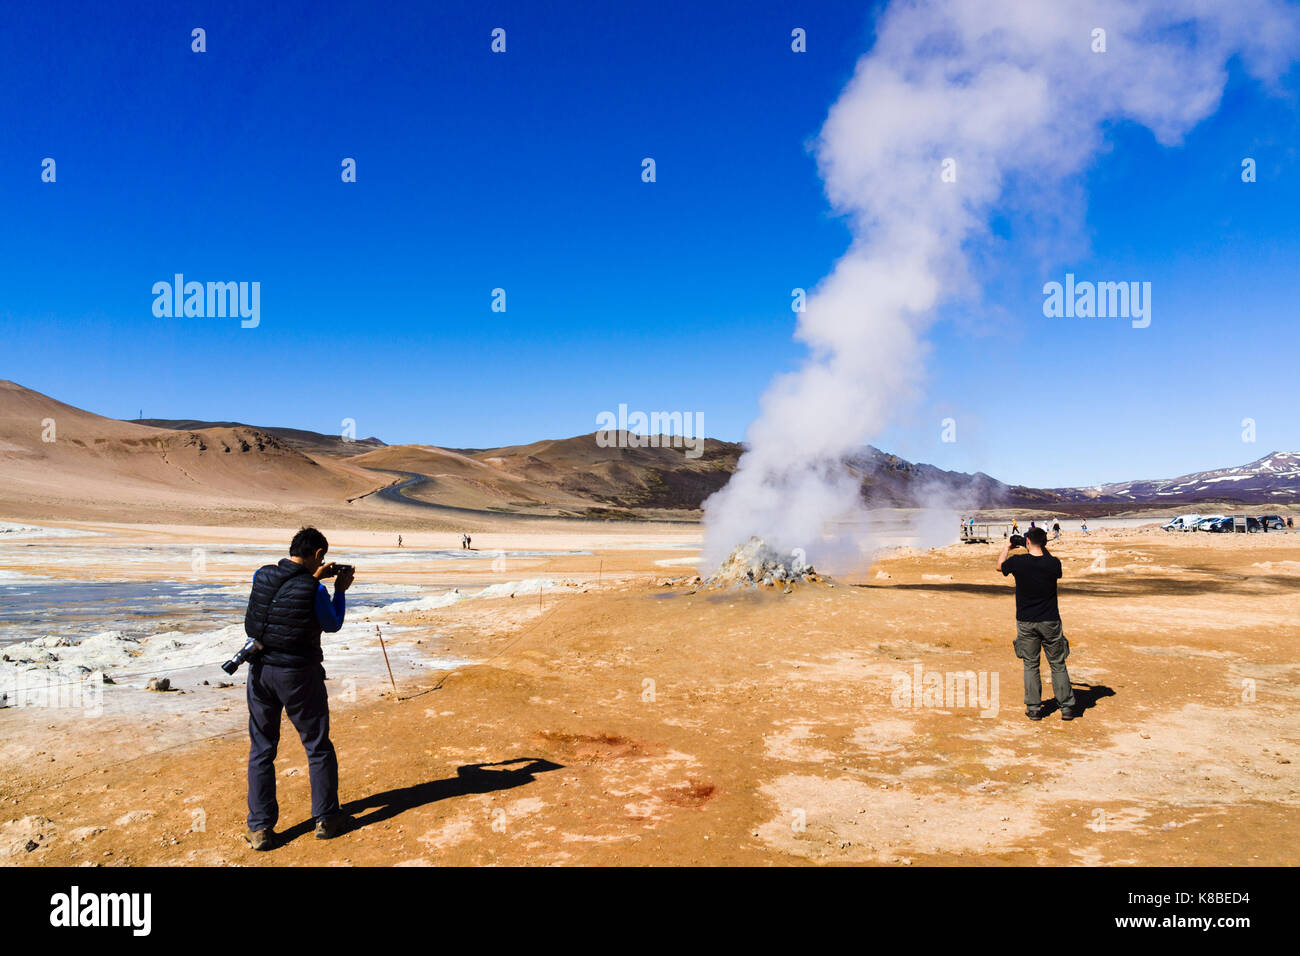 Tourists photographing a steaming fumarole at Námafjall Hverir geothermal area, Iceland - Stock Image